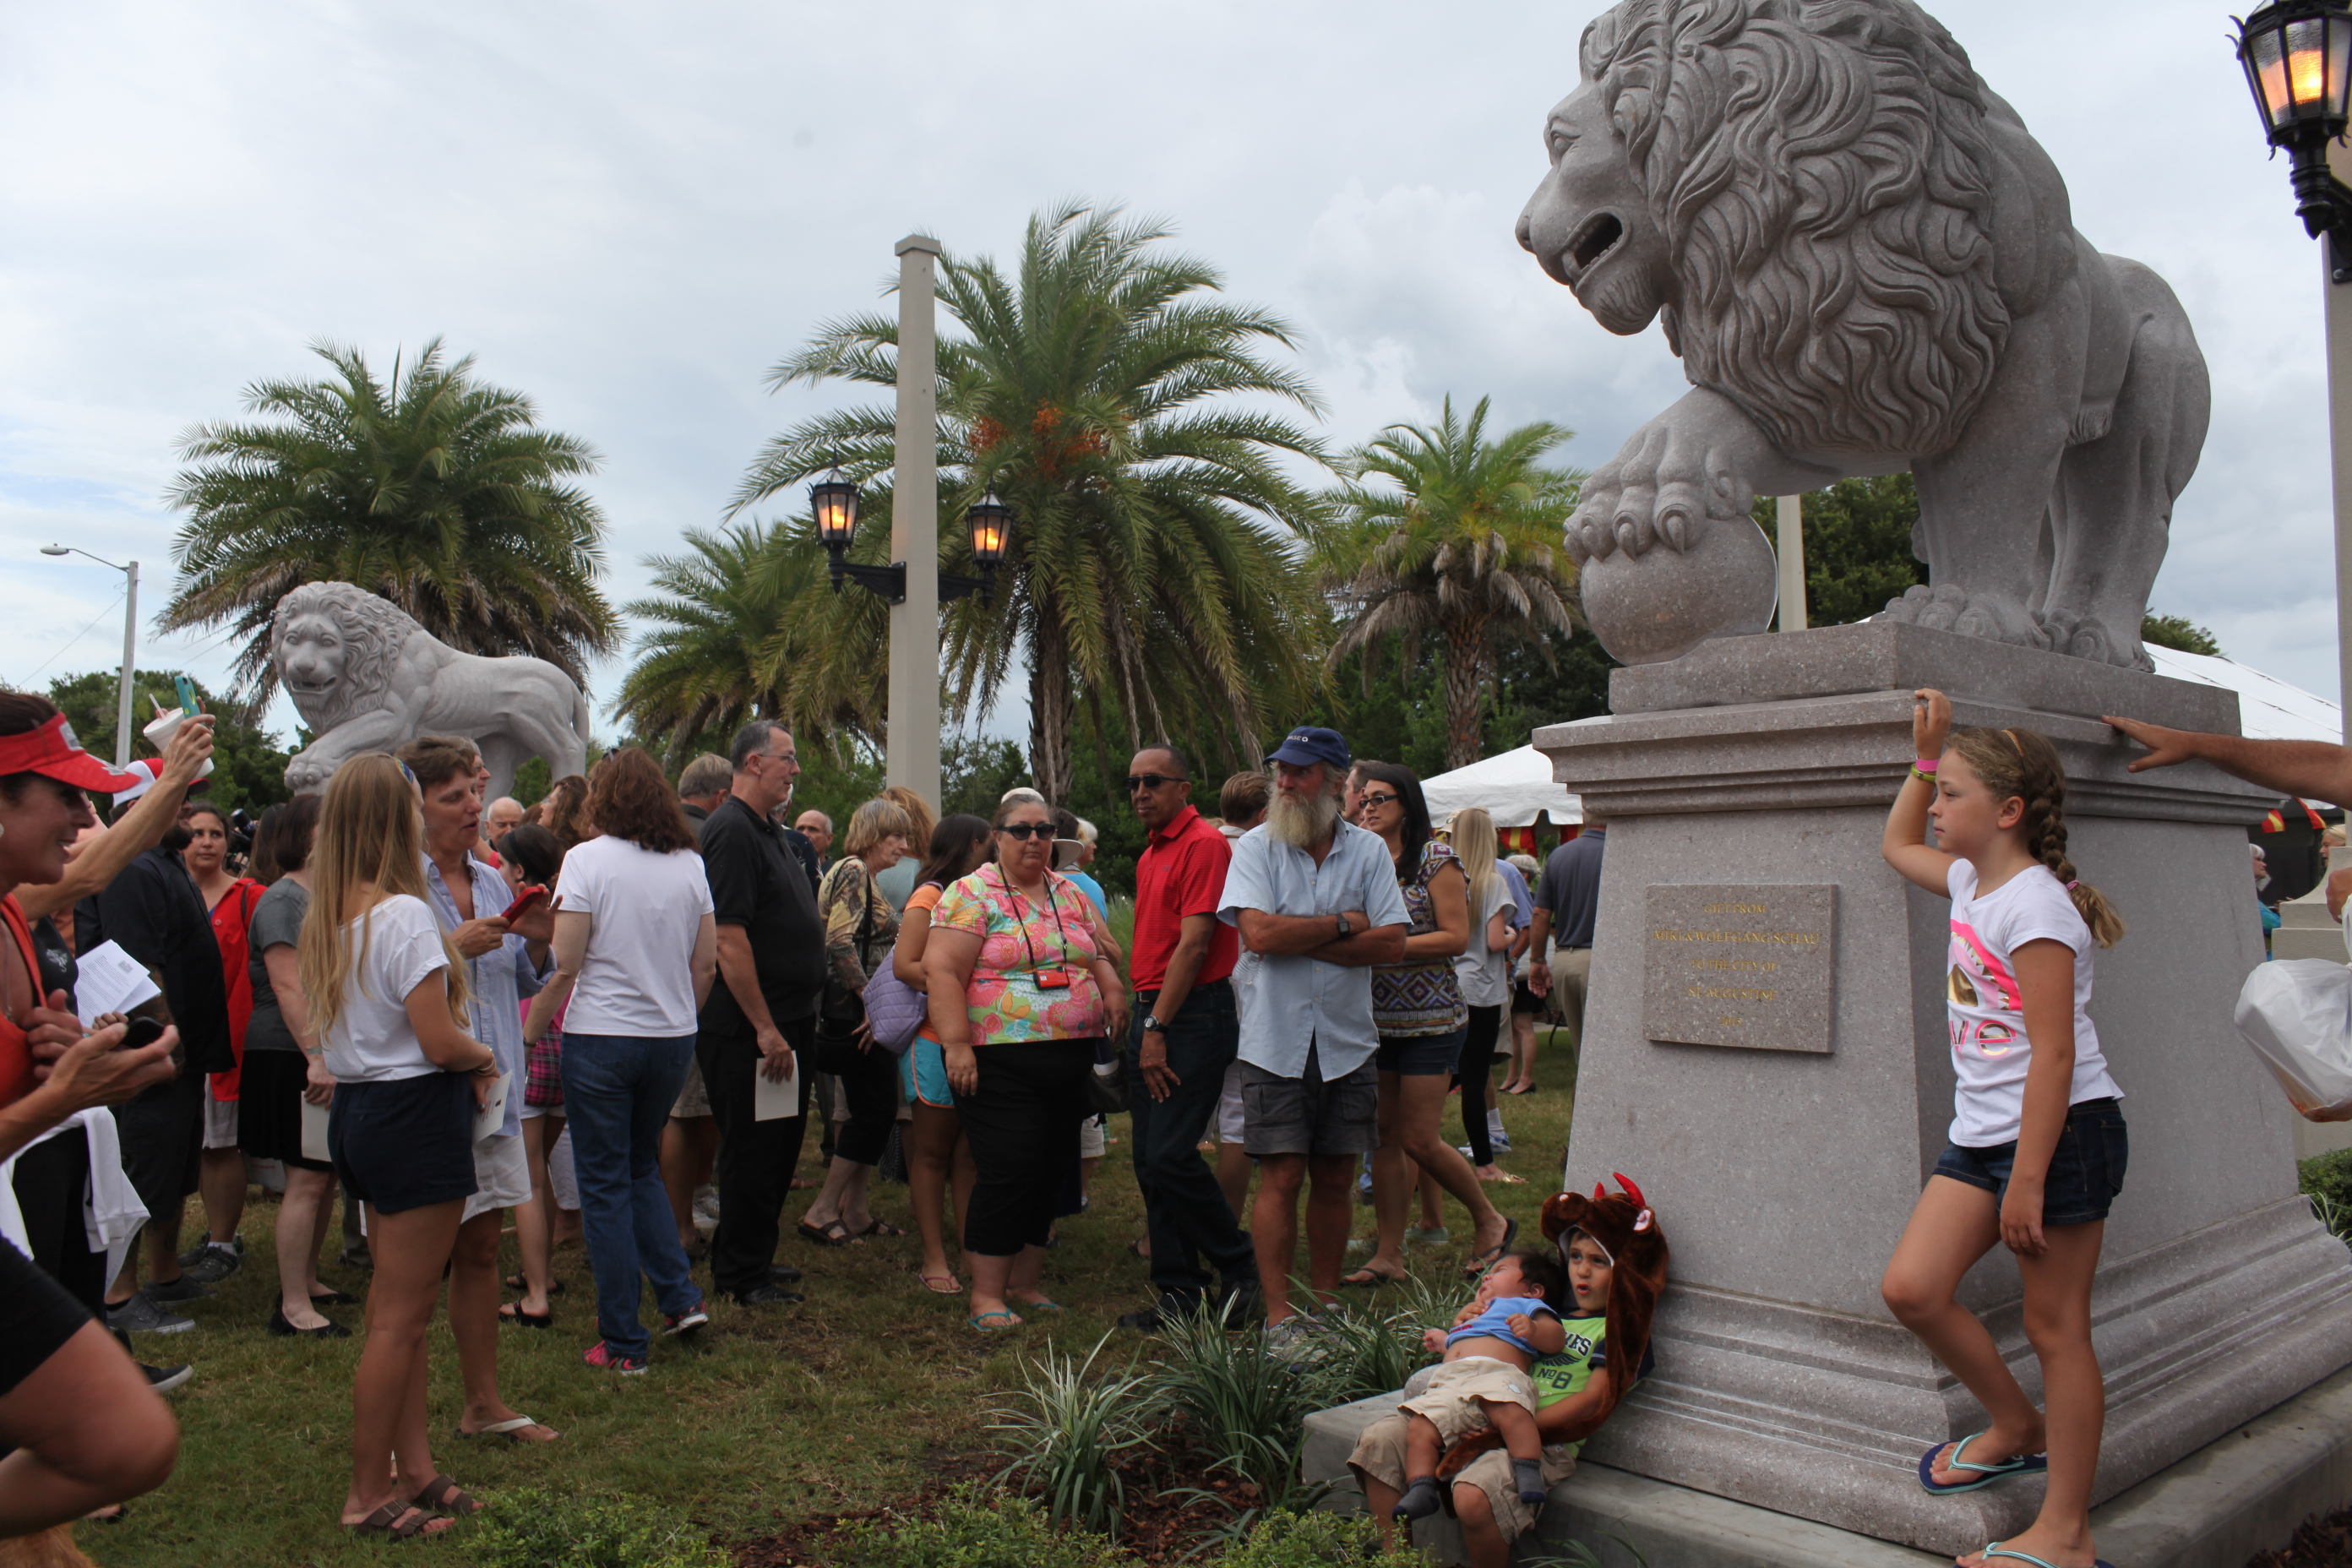 Photos Two New Lions Unveiled On The West Side Of The